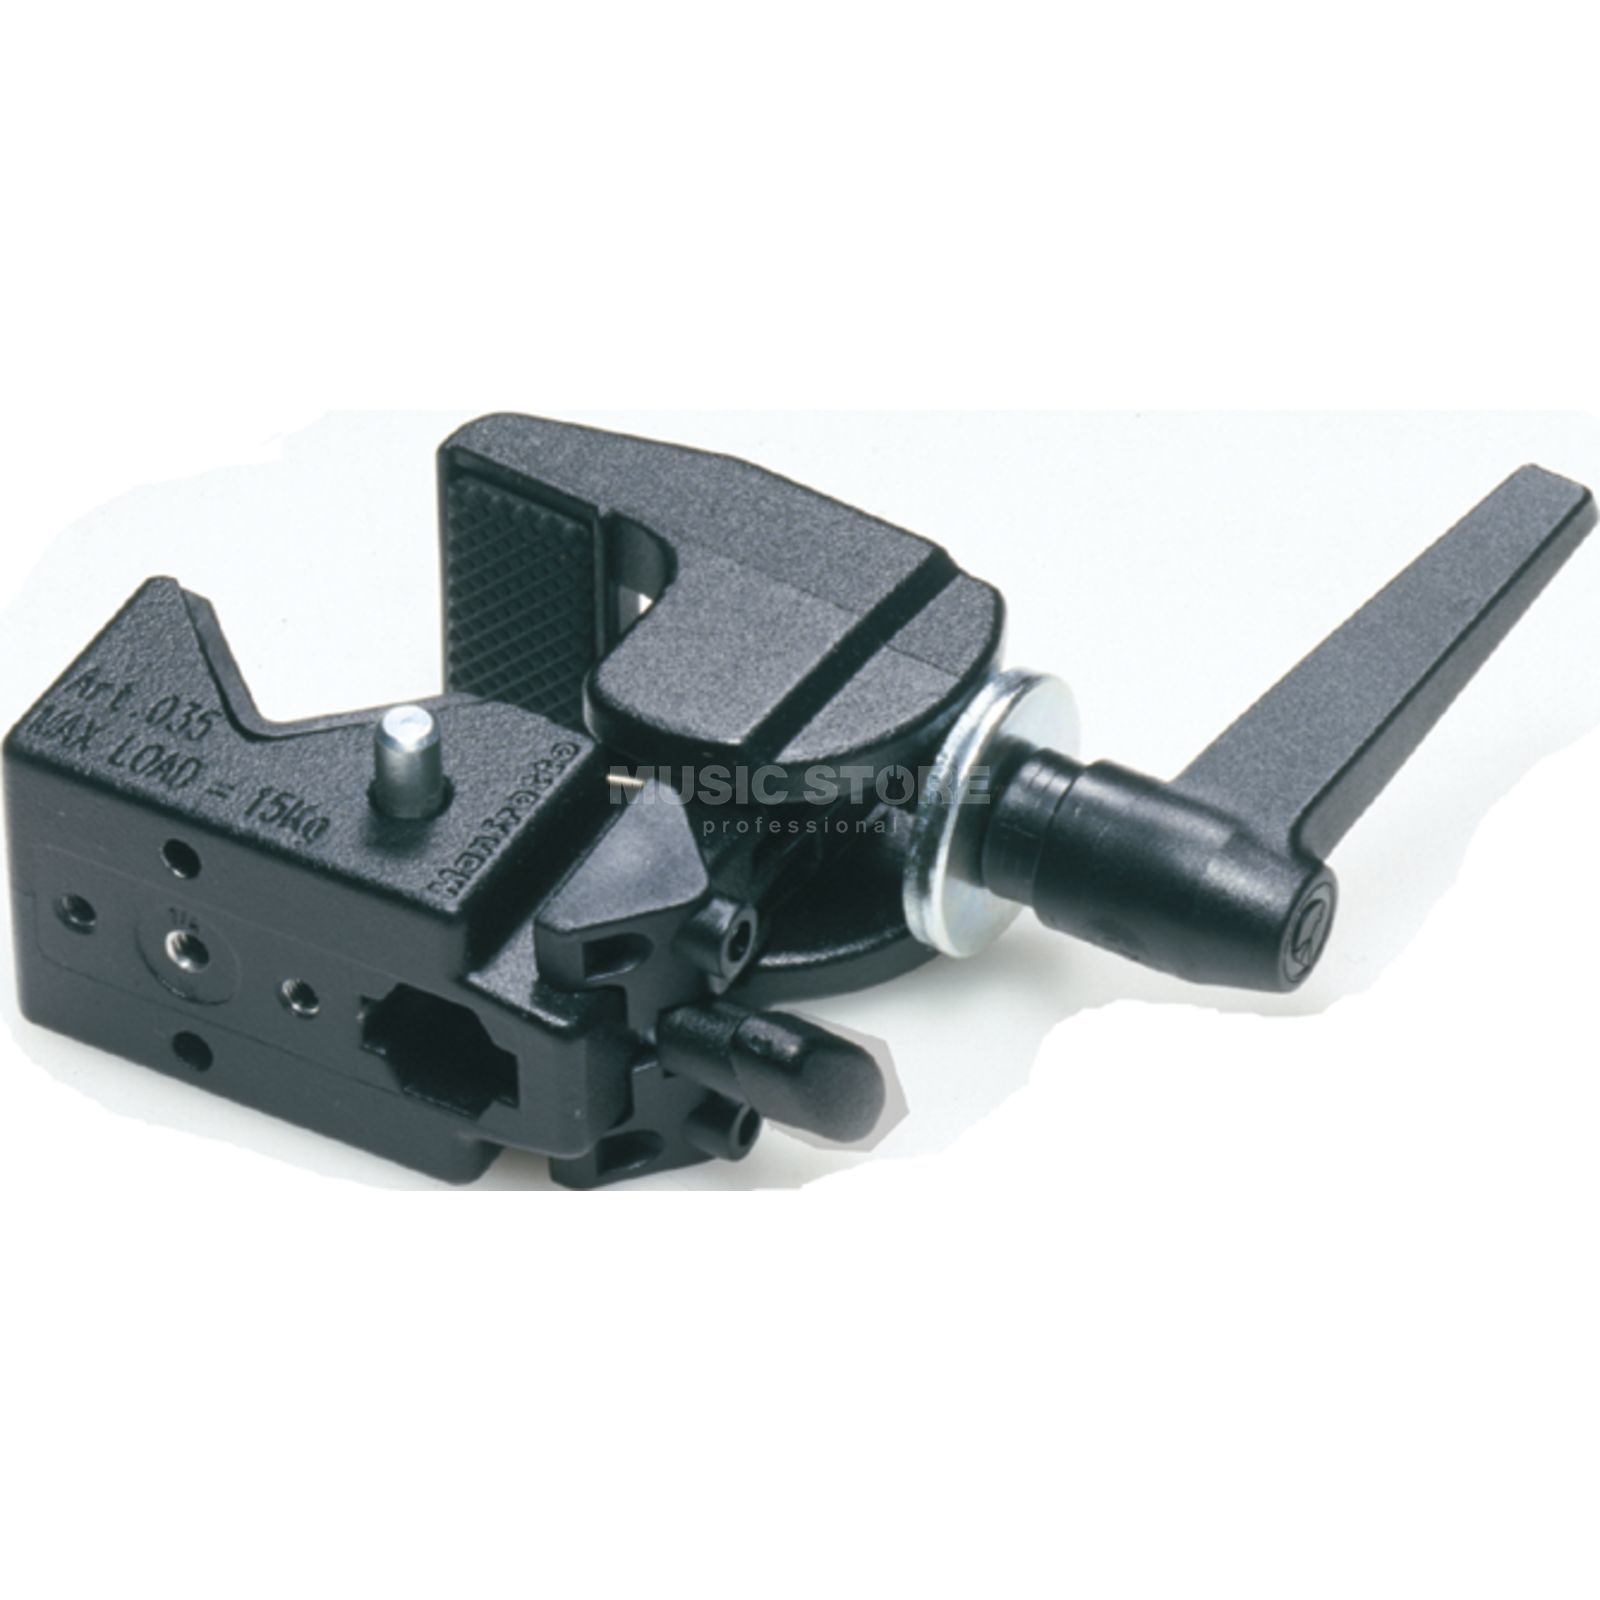 Manfrotto 035 Super Clamp  Produktbillede